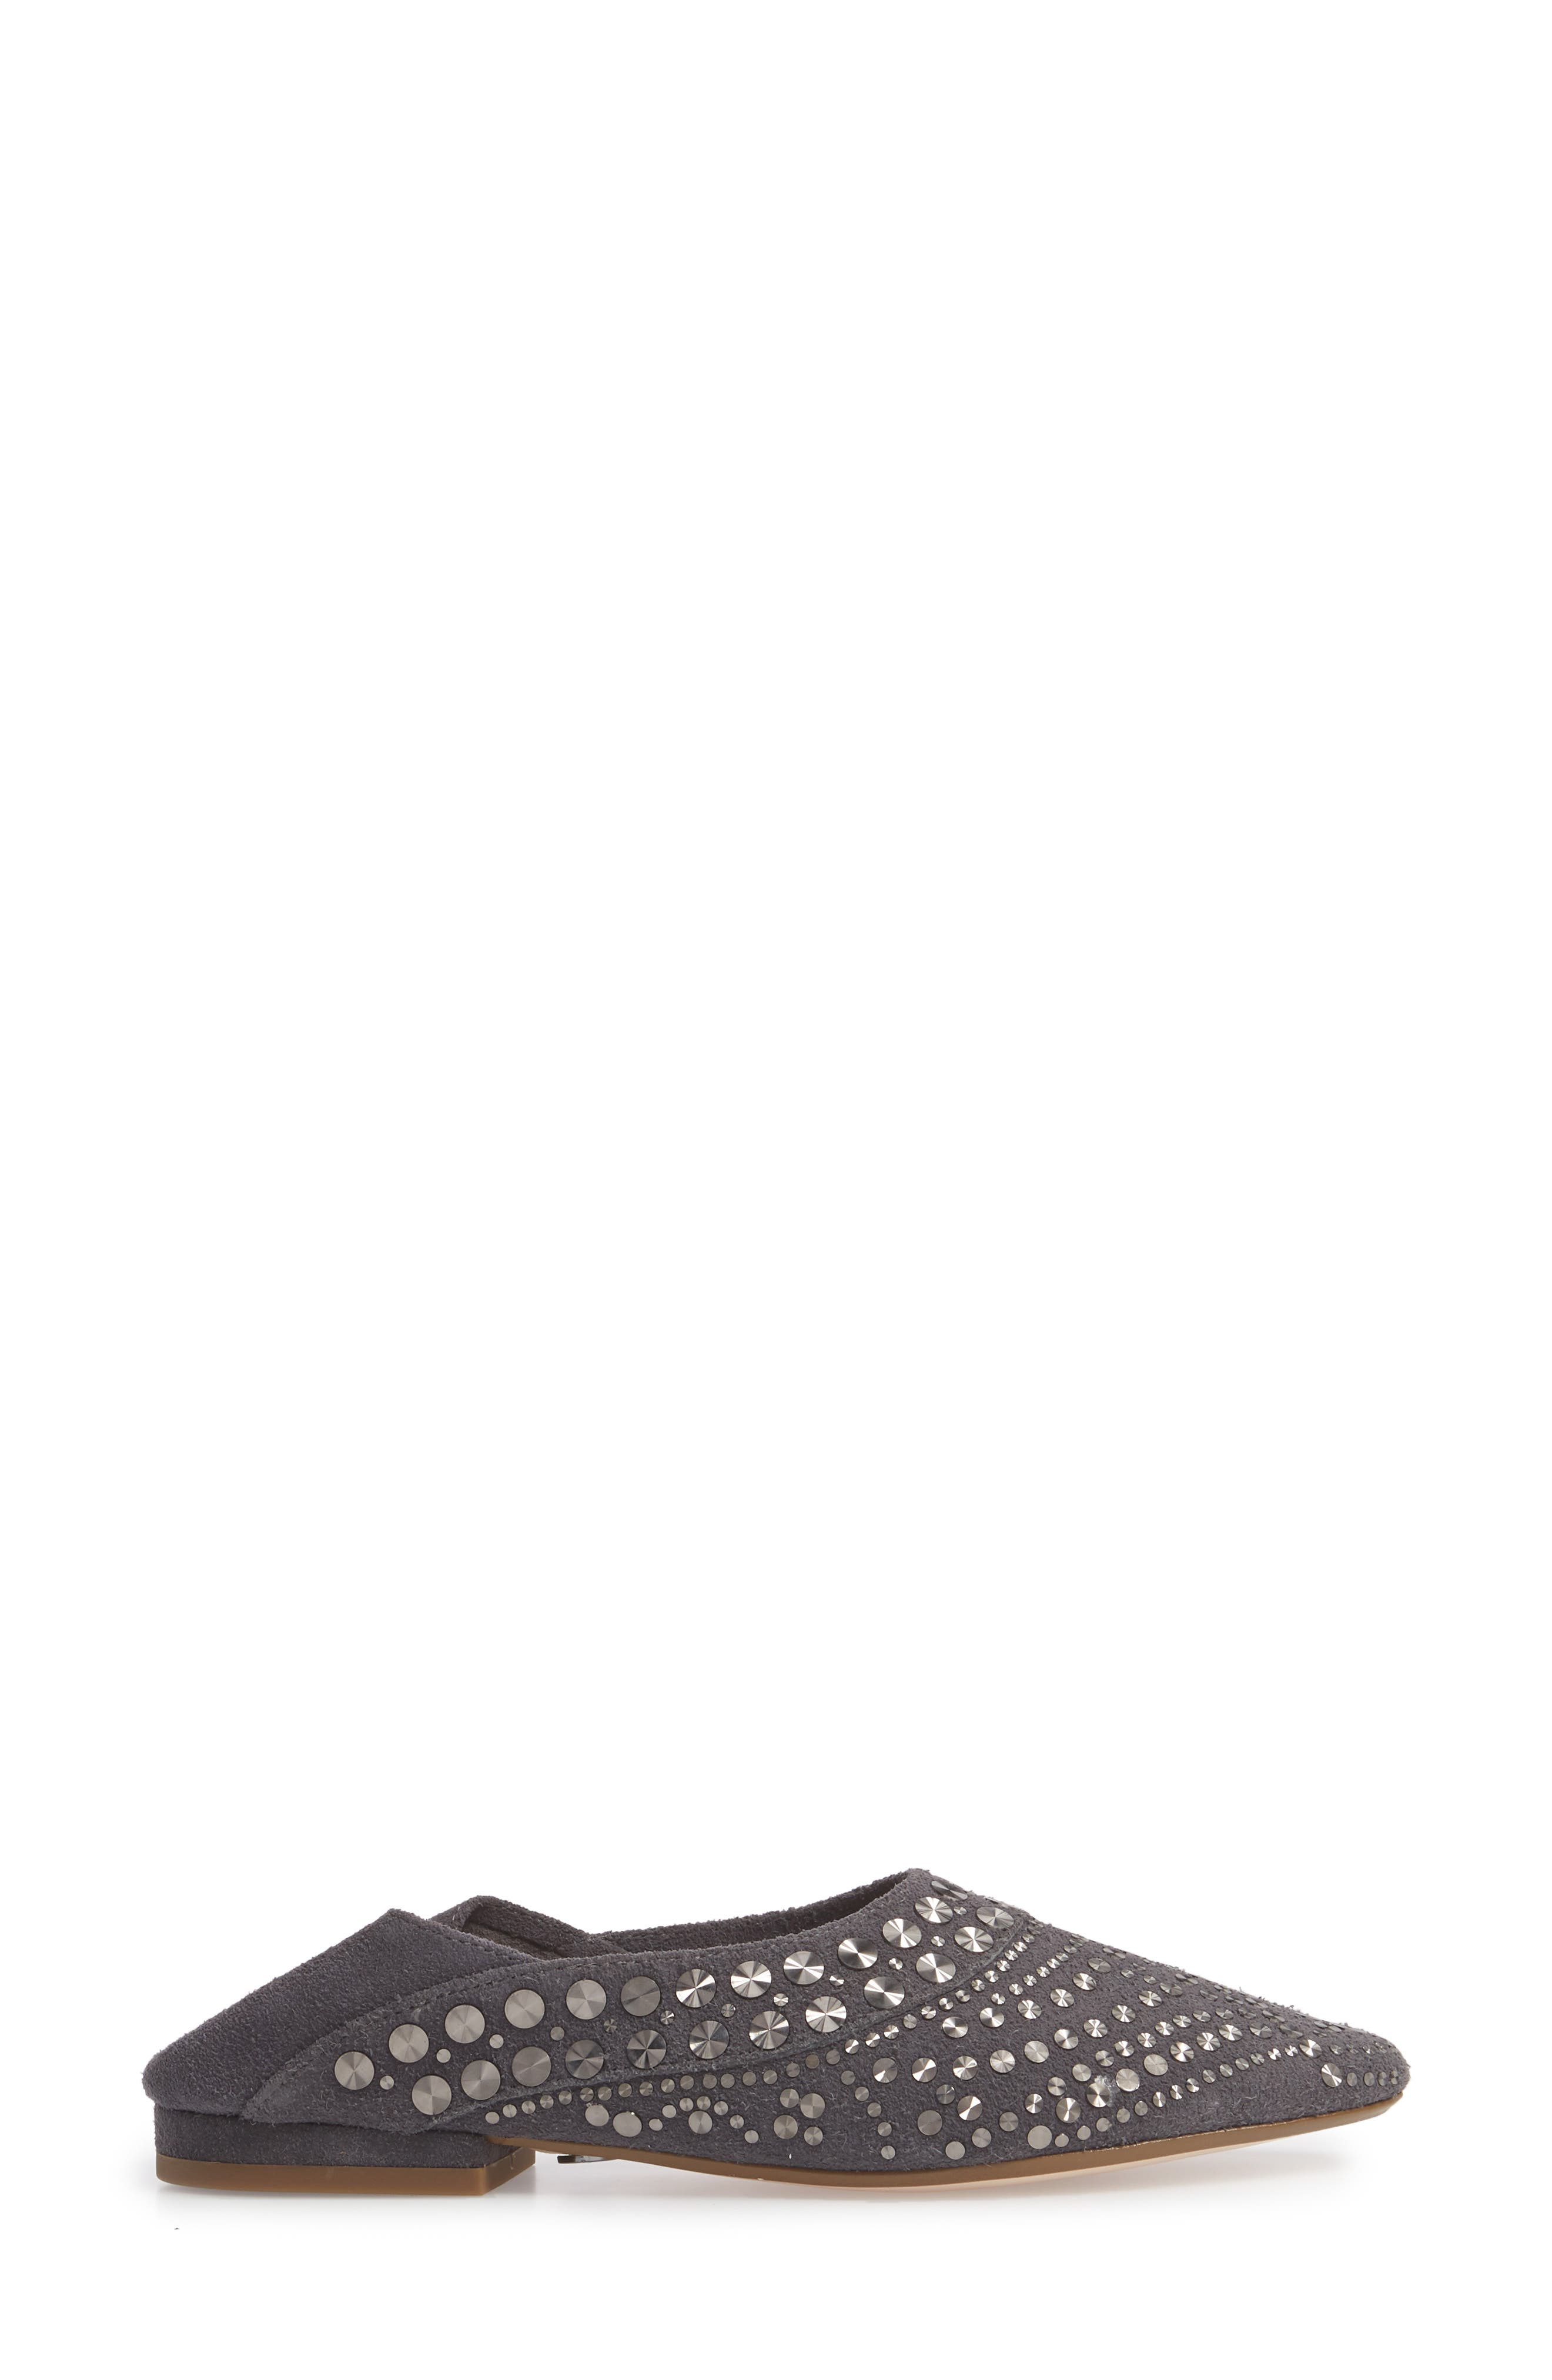 Cecelia New York Mojito Convertible Studded Flat